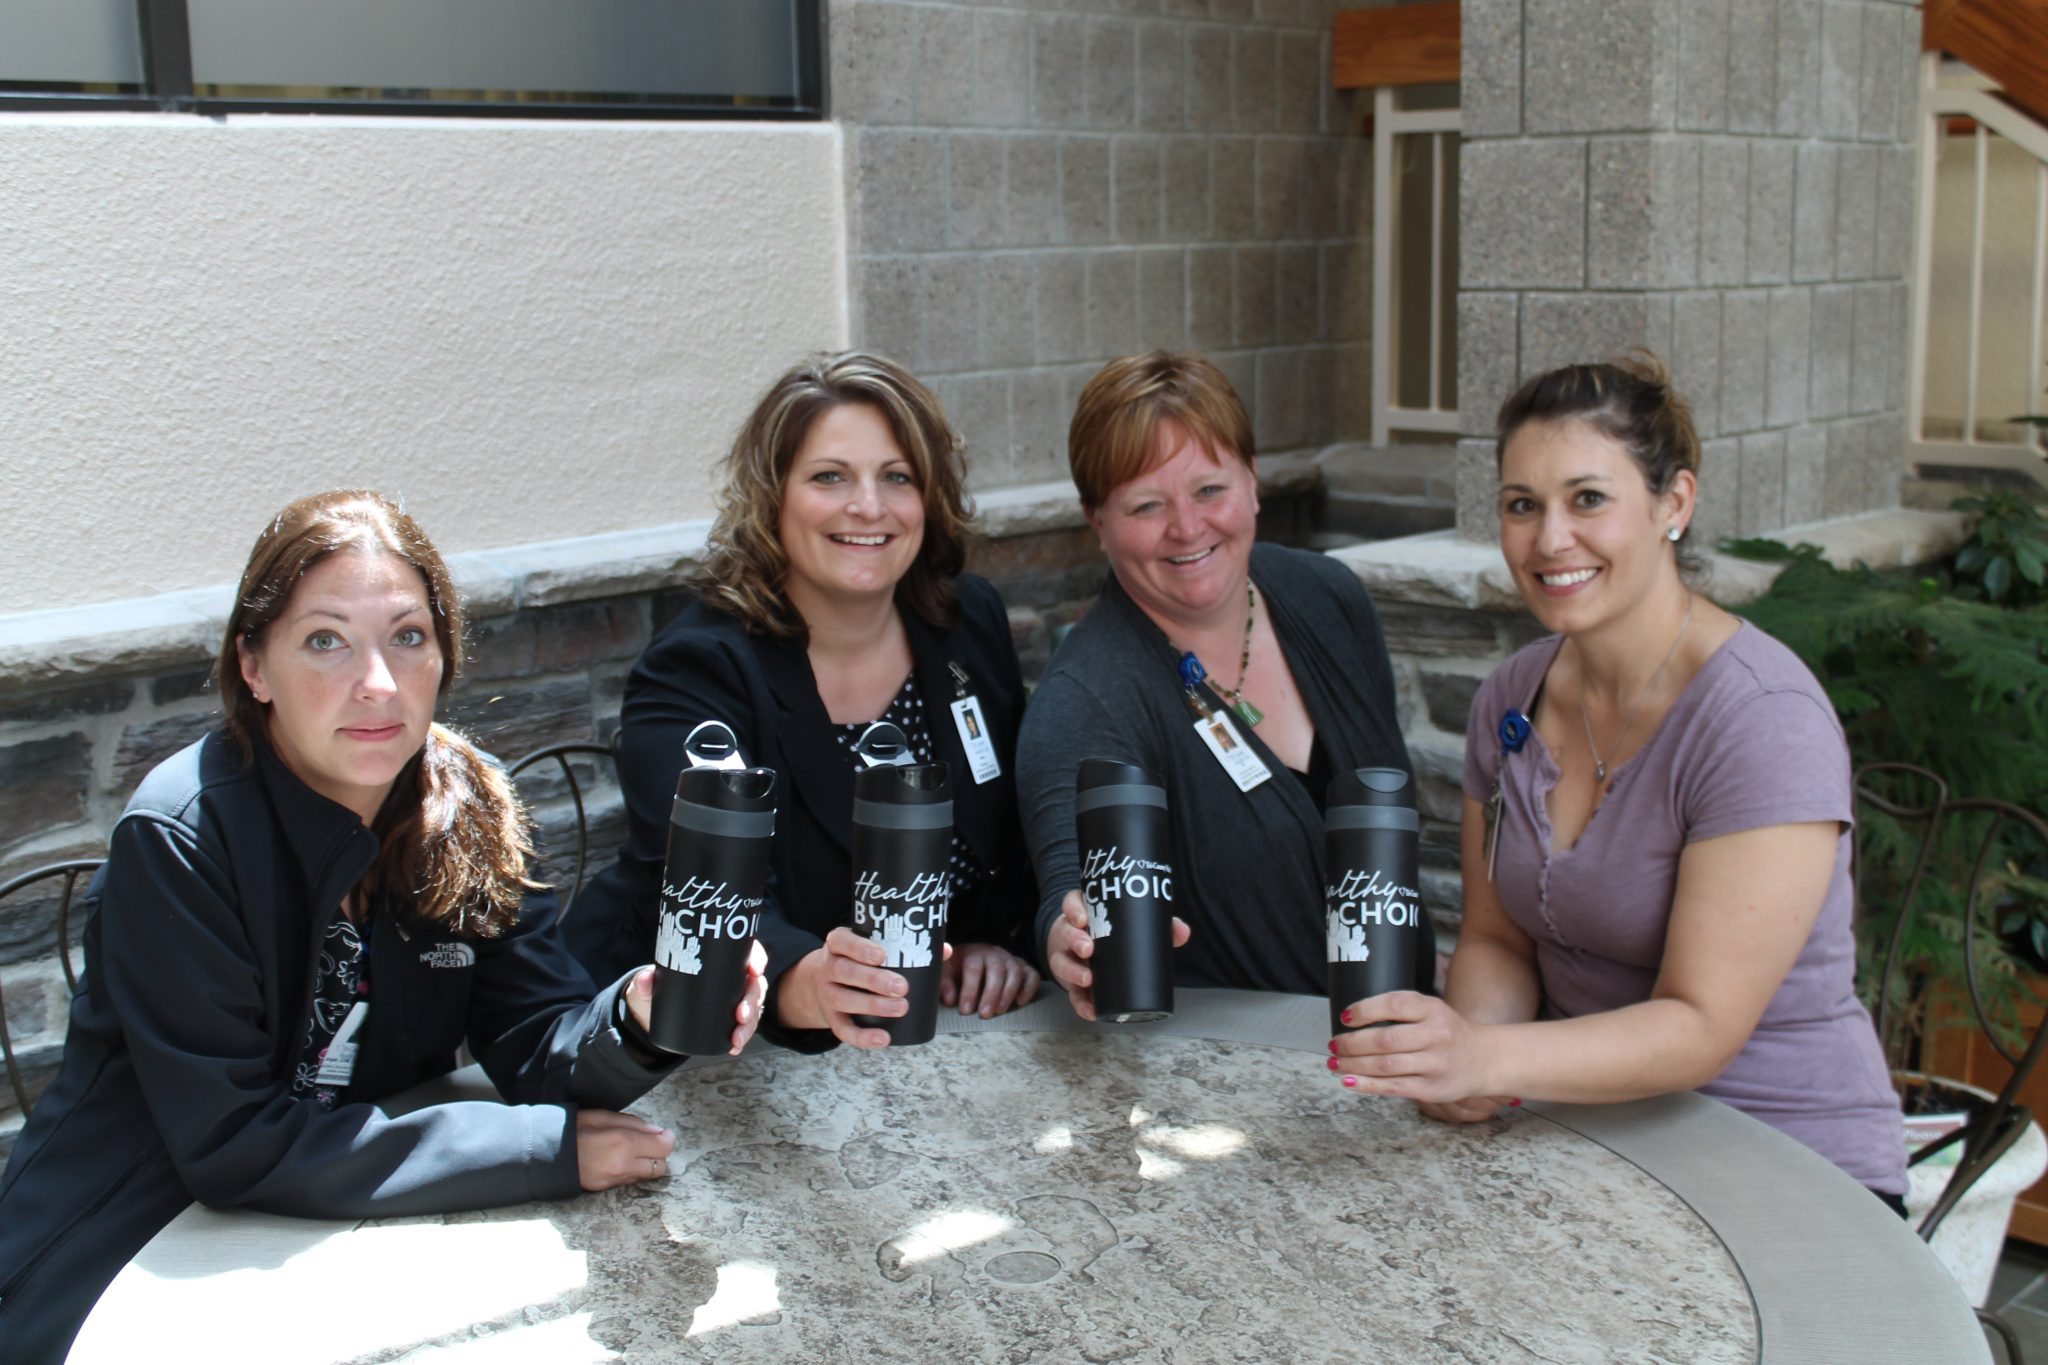 TCHC employees enjoying their water in Healthy By Choice reusable water bottles.